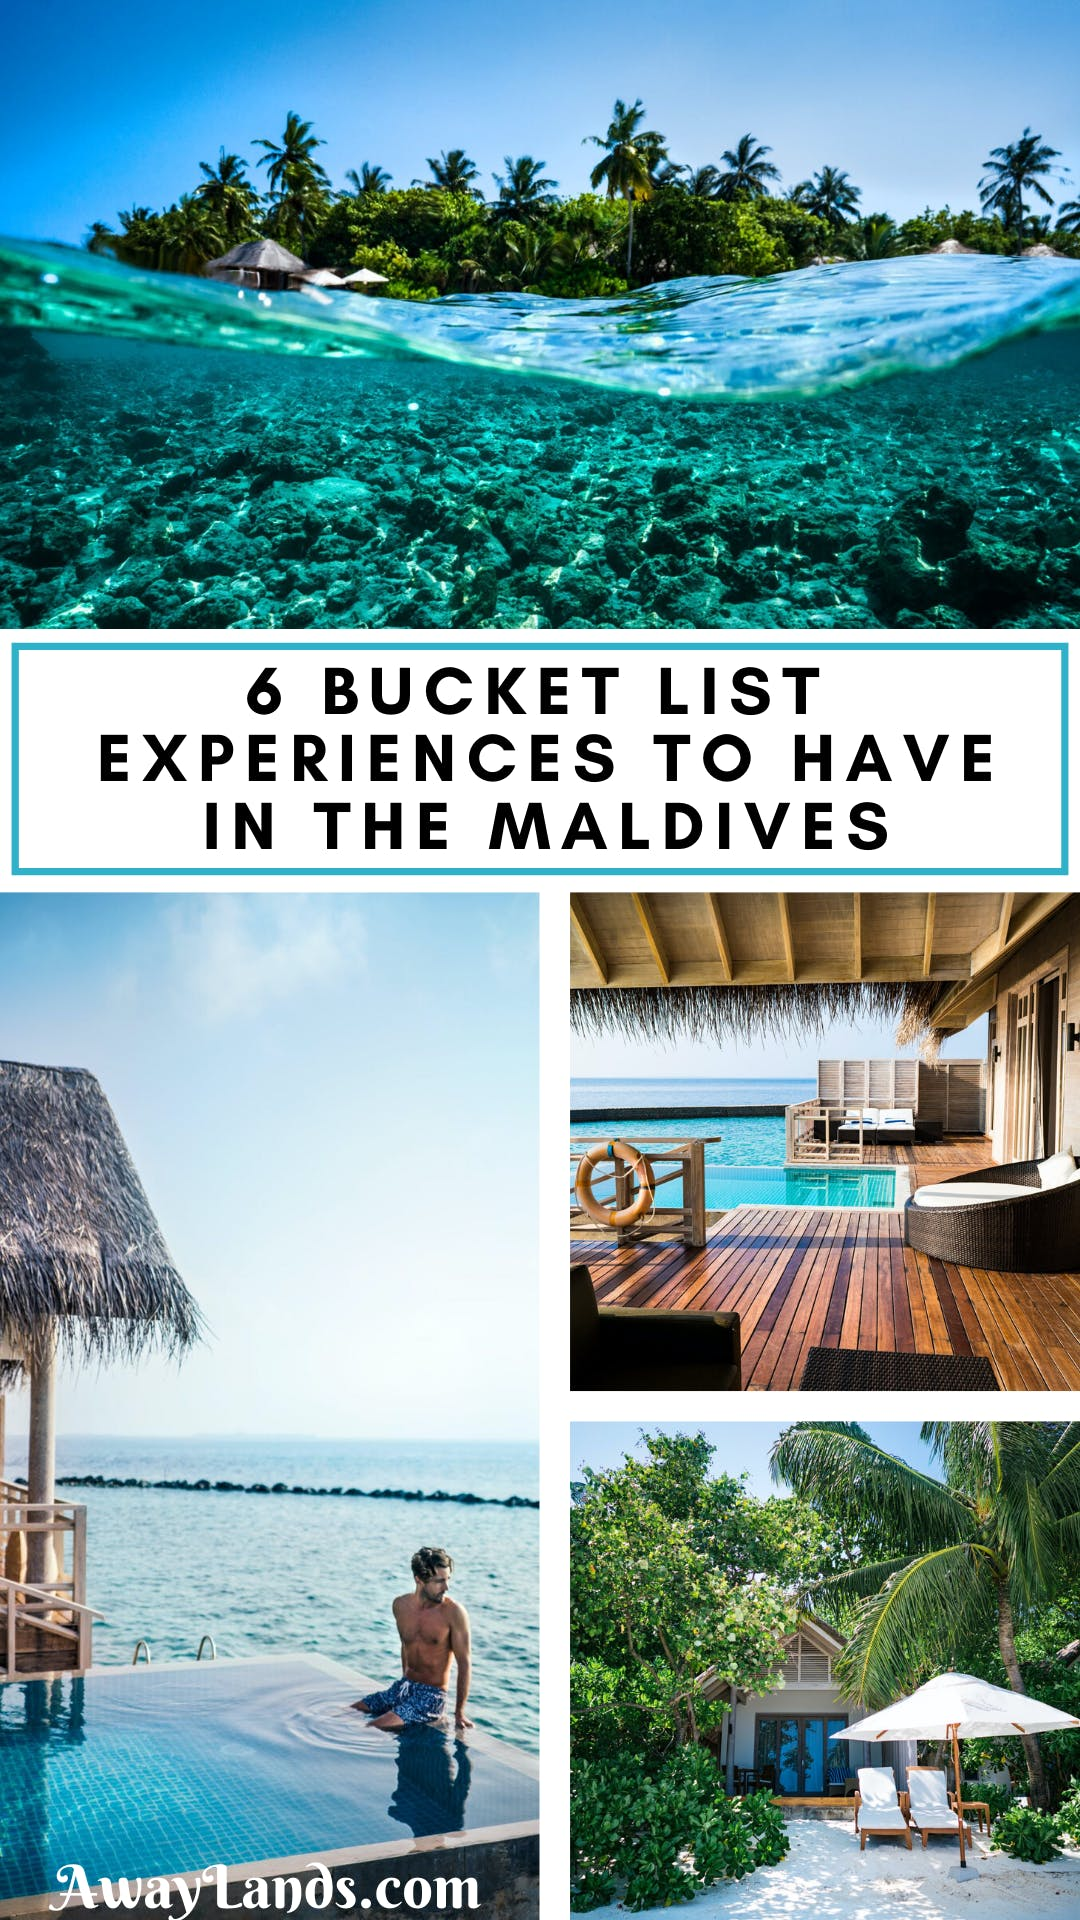 Check out this list of 6 bucket list experiences to have in the Maldives. From relaxing in your overwater bungalow to enjoy all of the water activities in the Maldives, find something to add to your Maldives bucket list here. #maldives #bucketlist #travel | best things to do in the Maldives | things to do in the Maldives honeymoon | things to do in the Maldives bucket lists | Maldives travel bucket lists | Maldives bucket list travel | Maldives things to do bucket lists